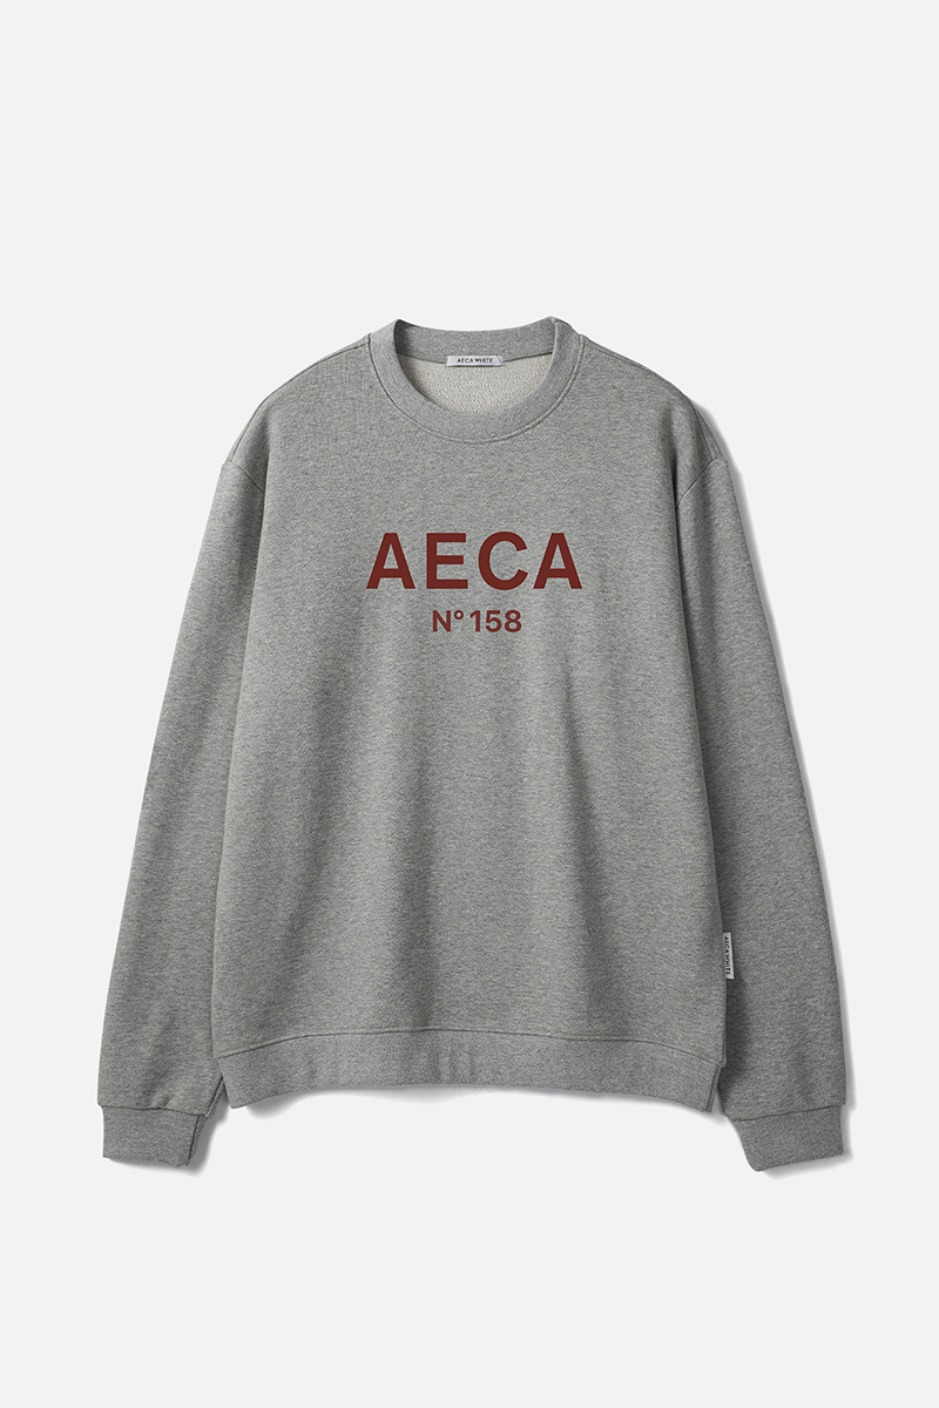 AECA BIG LOGO SWEATSHIRT-GREY